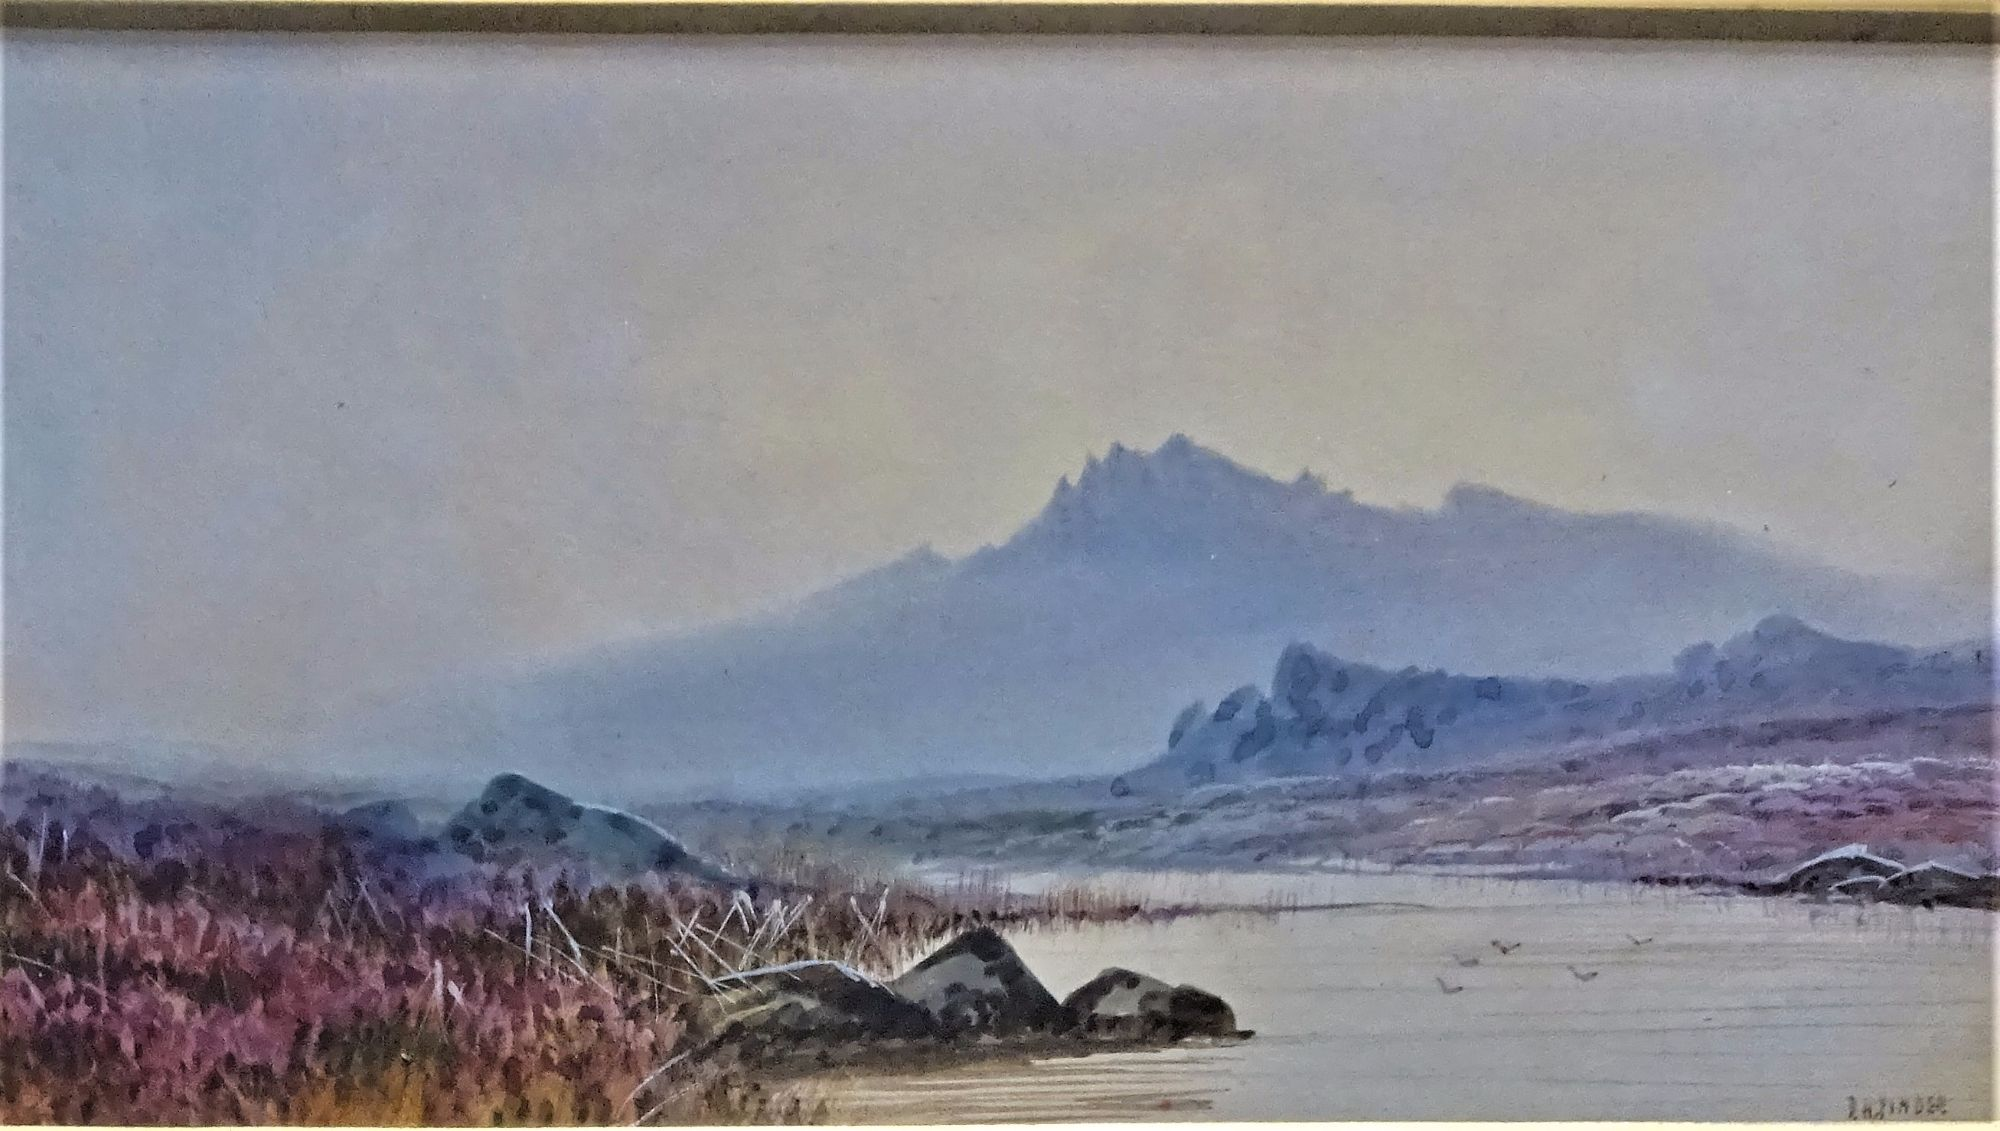 Pinder, D.H., The Peaks Dartmoor, watercolour and gouache, c1920. Framed.